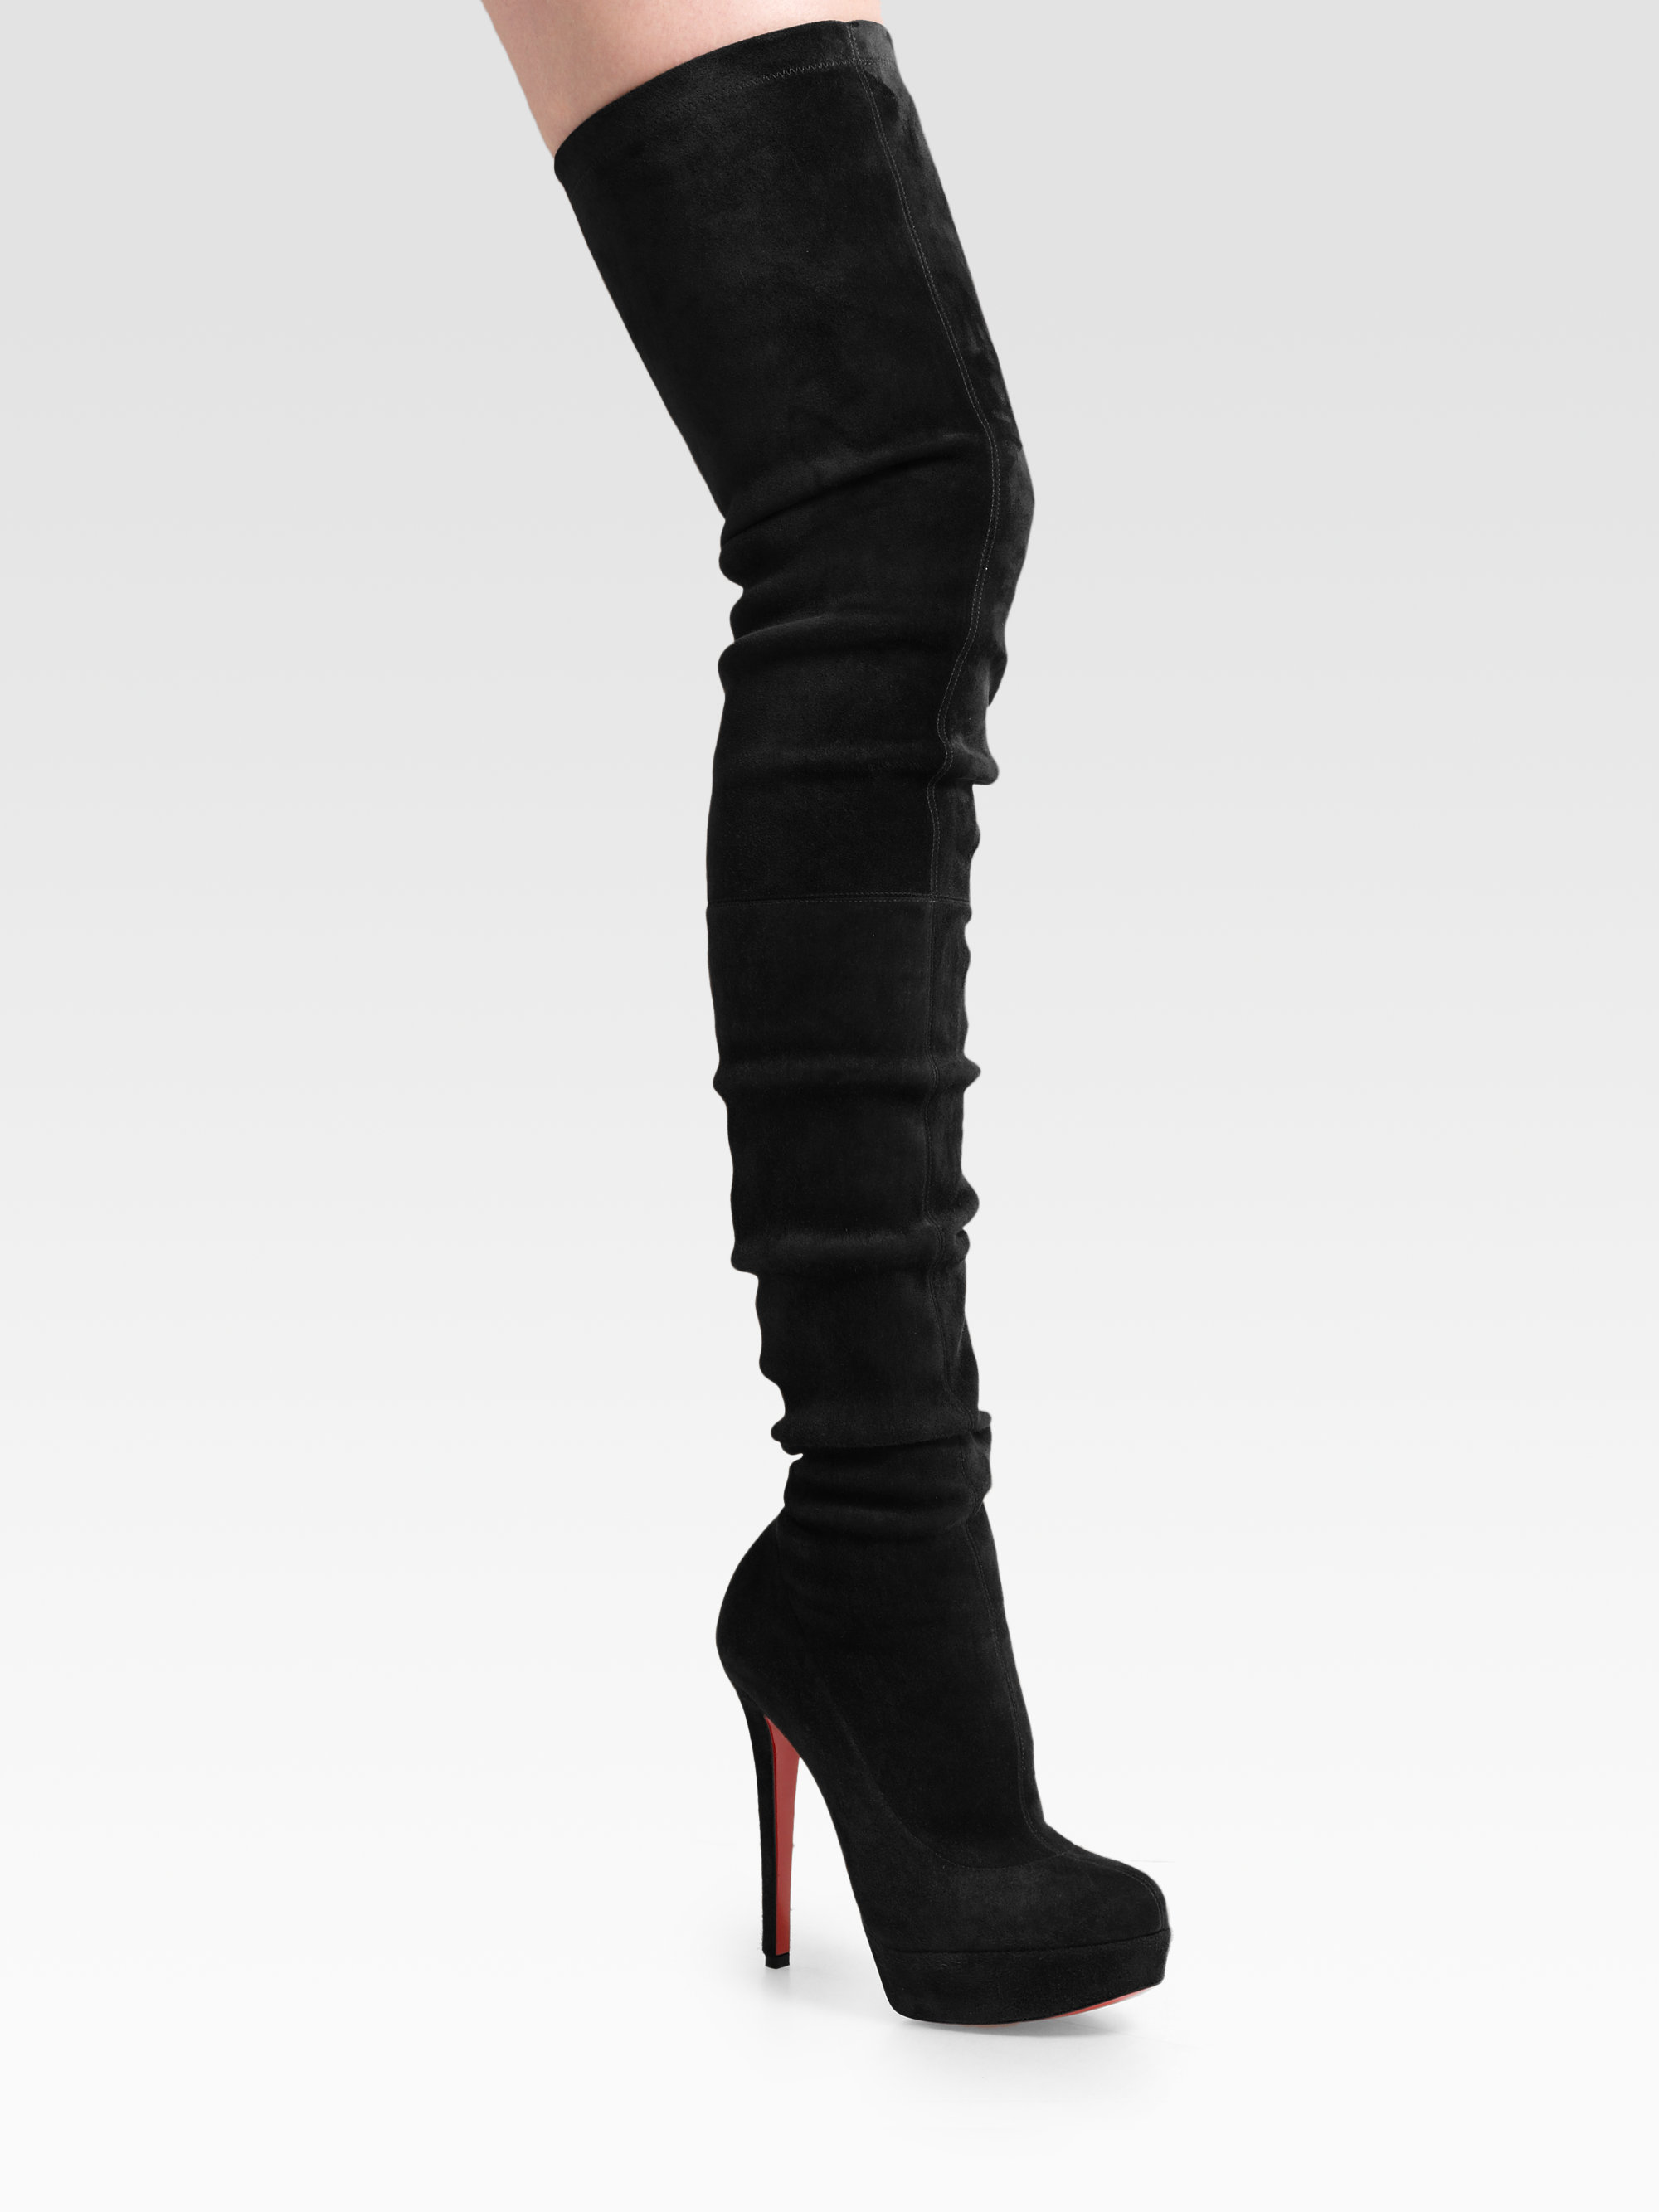 christian louboutin thigh high boots suede